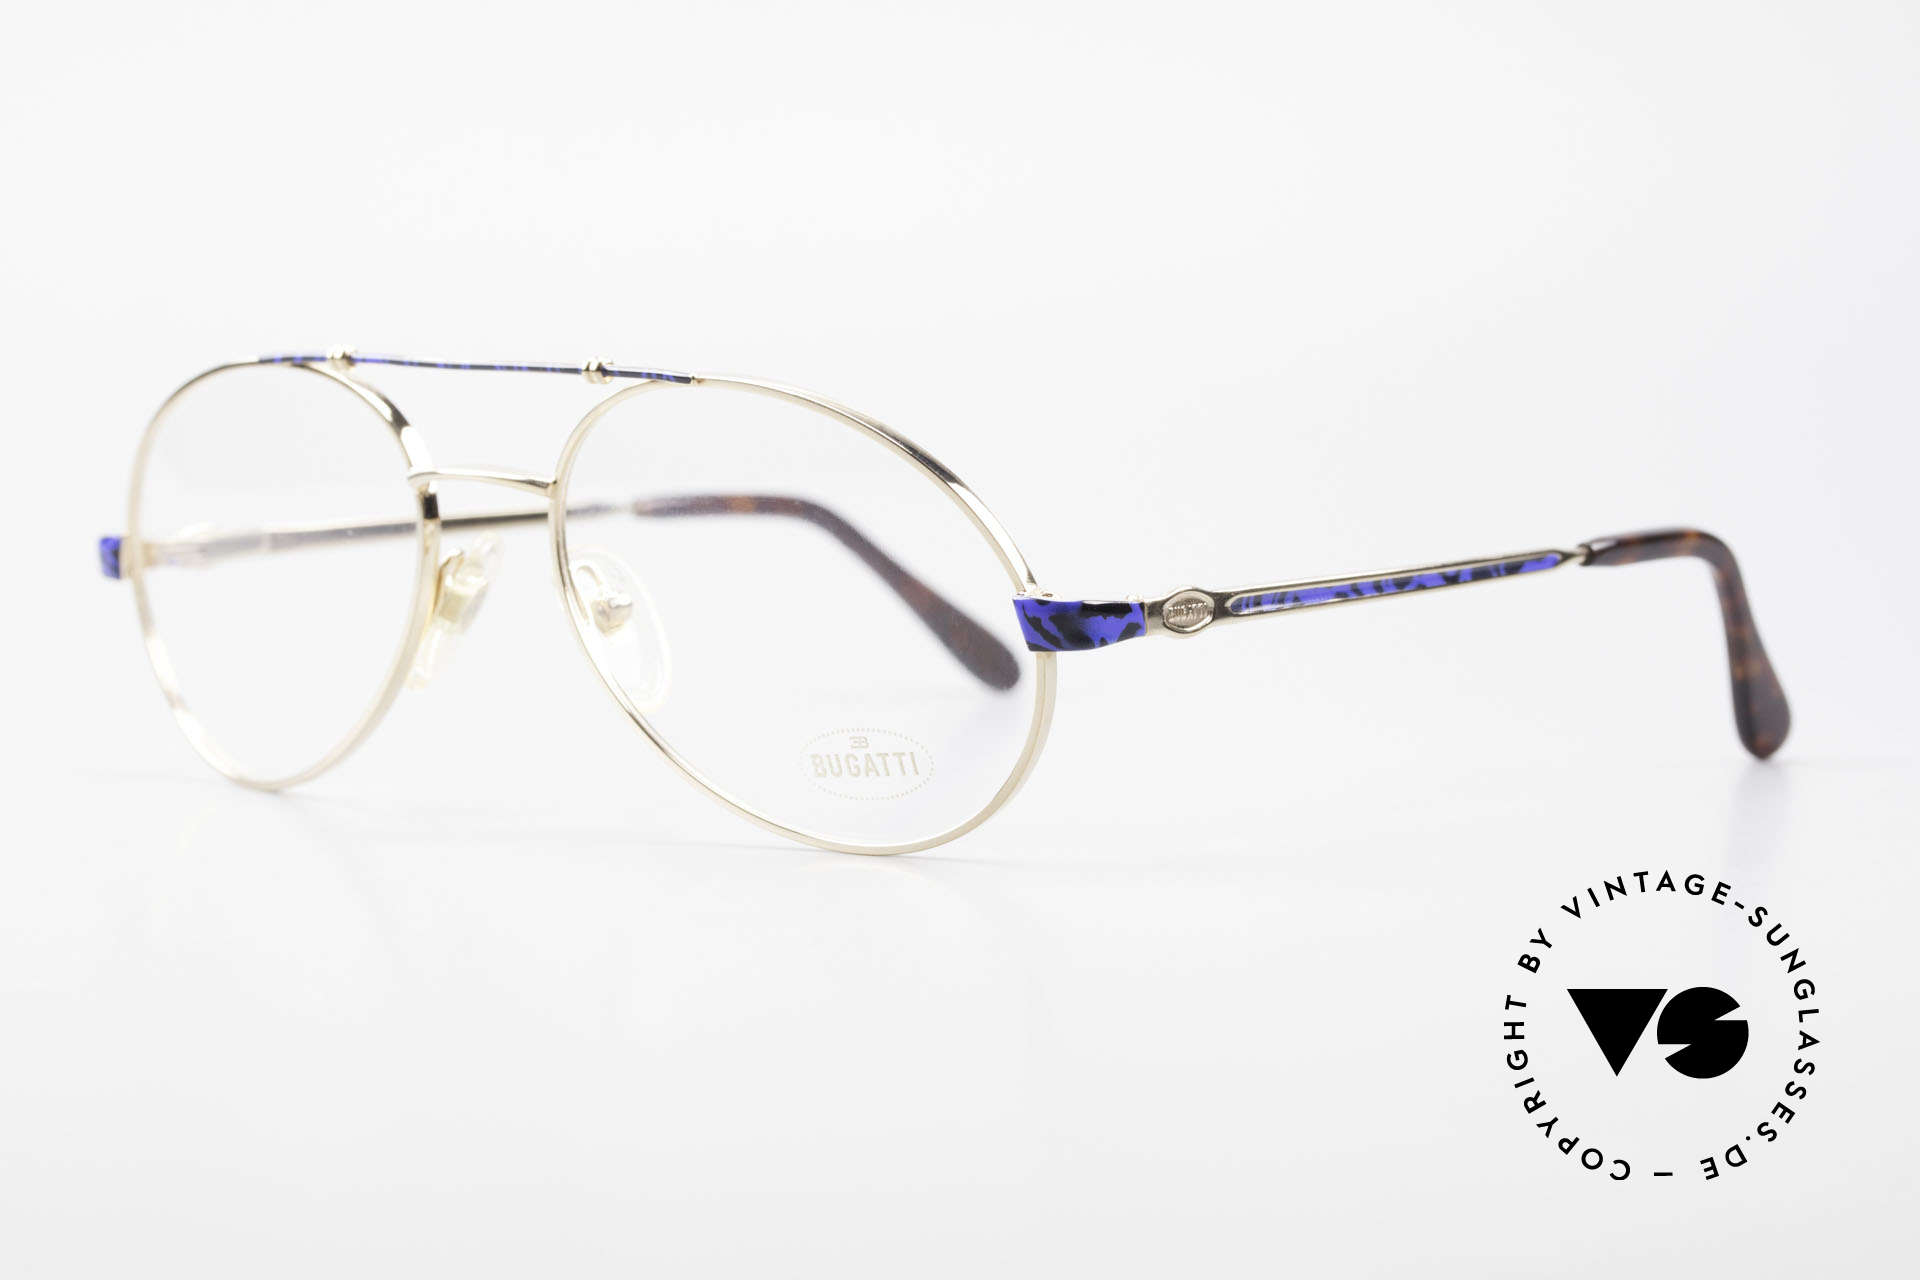 Bugatti 14818 Gold Plated Luxury Eyeglasses, flexible spring temples & top-notch craftmanship, Made for Men